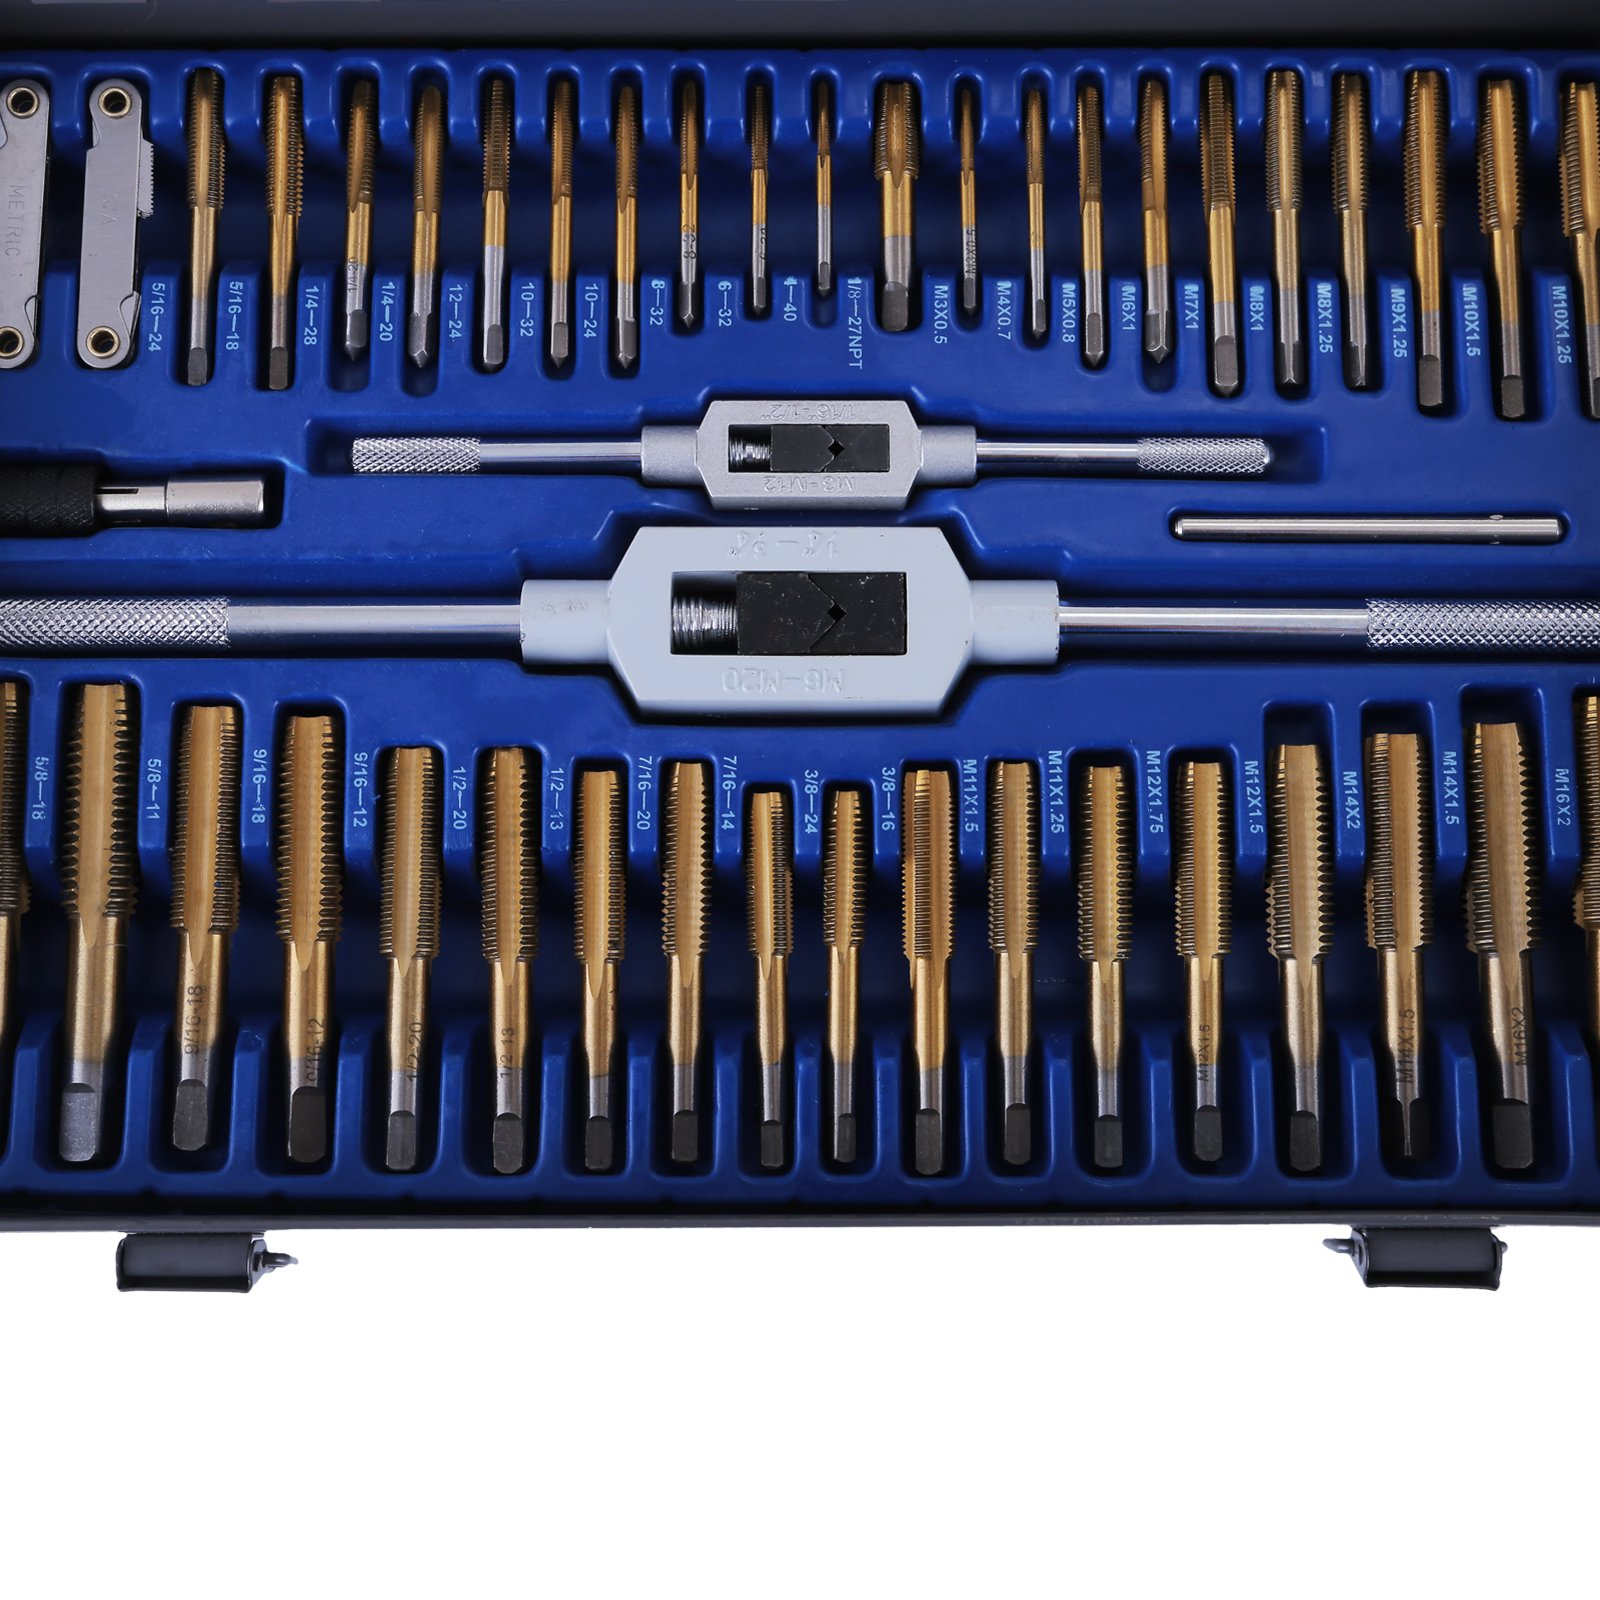 Happybuy Tap and Die Set 86PCS Combination SAE / Metric Tap and Die Kit for Cutting External and Internal Threads with Storage Case by Happybuy (Image #6)